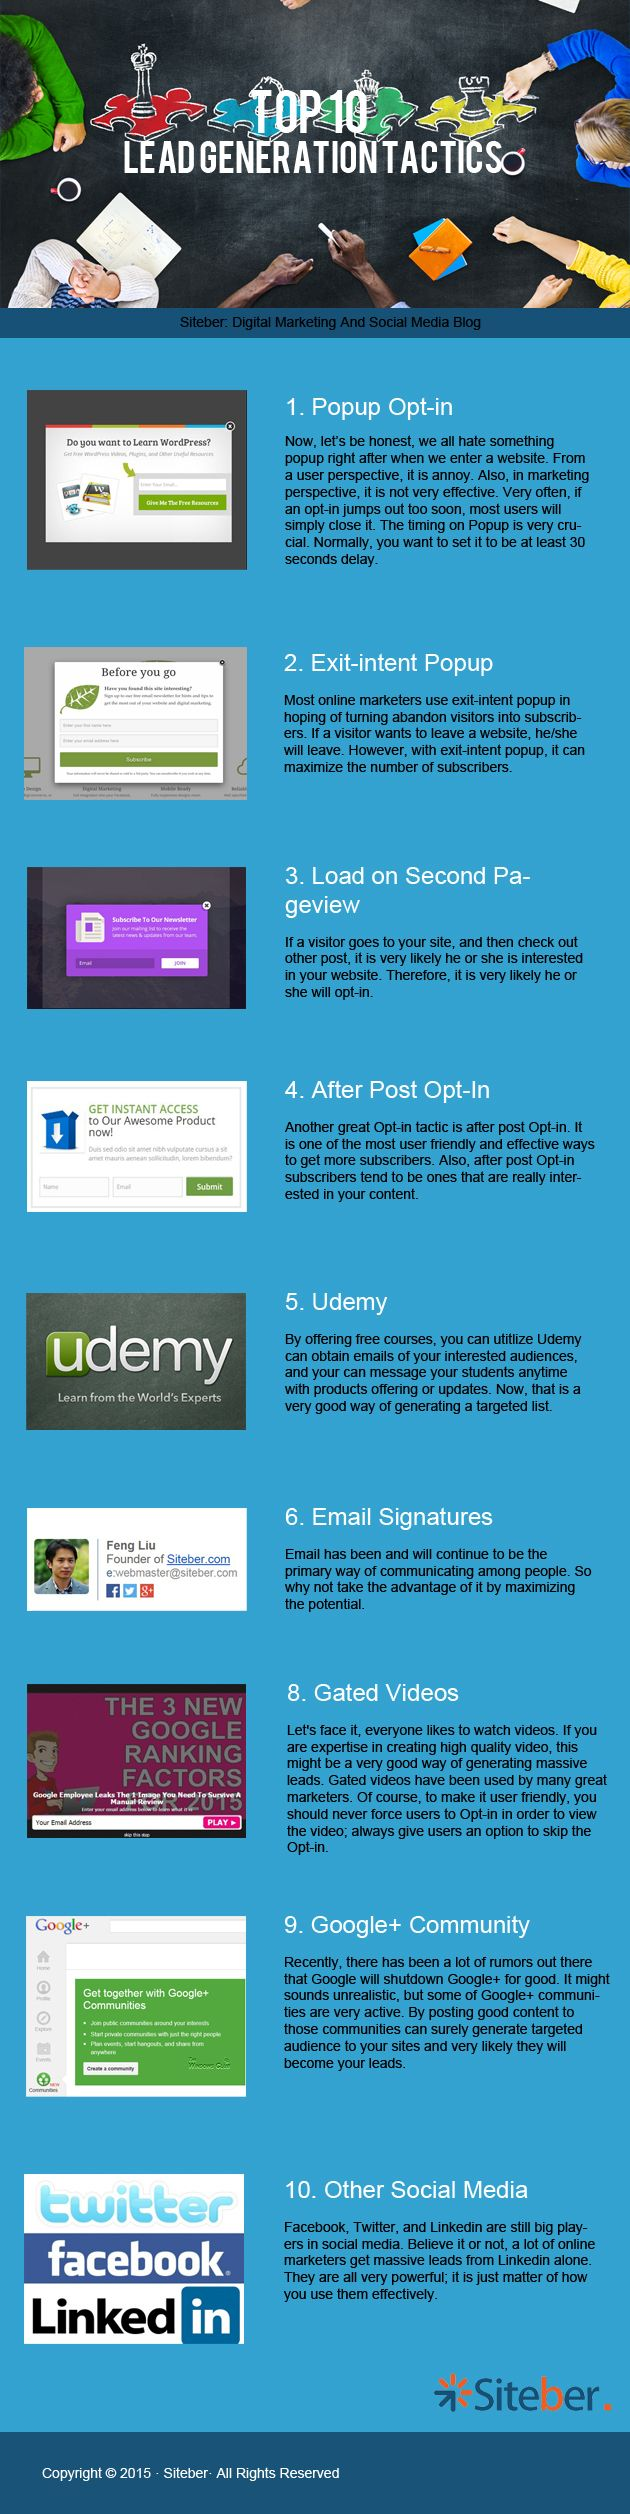 Top 10 Lead Generation Tactics for 2015 - #infographic